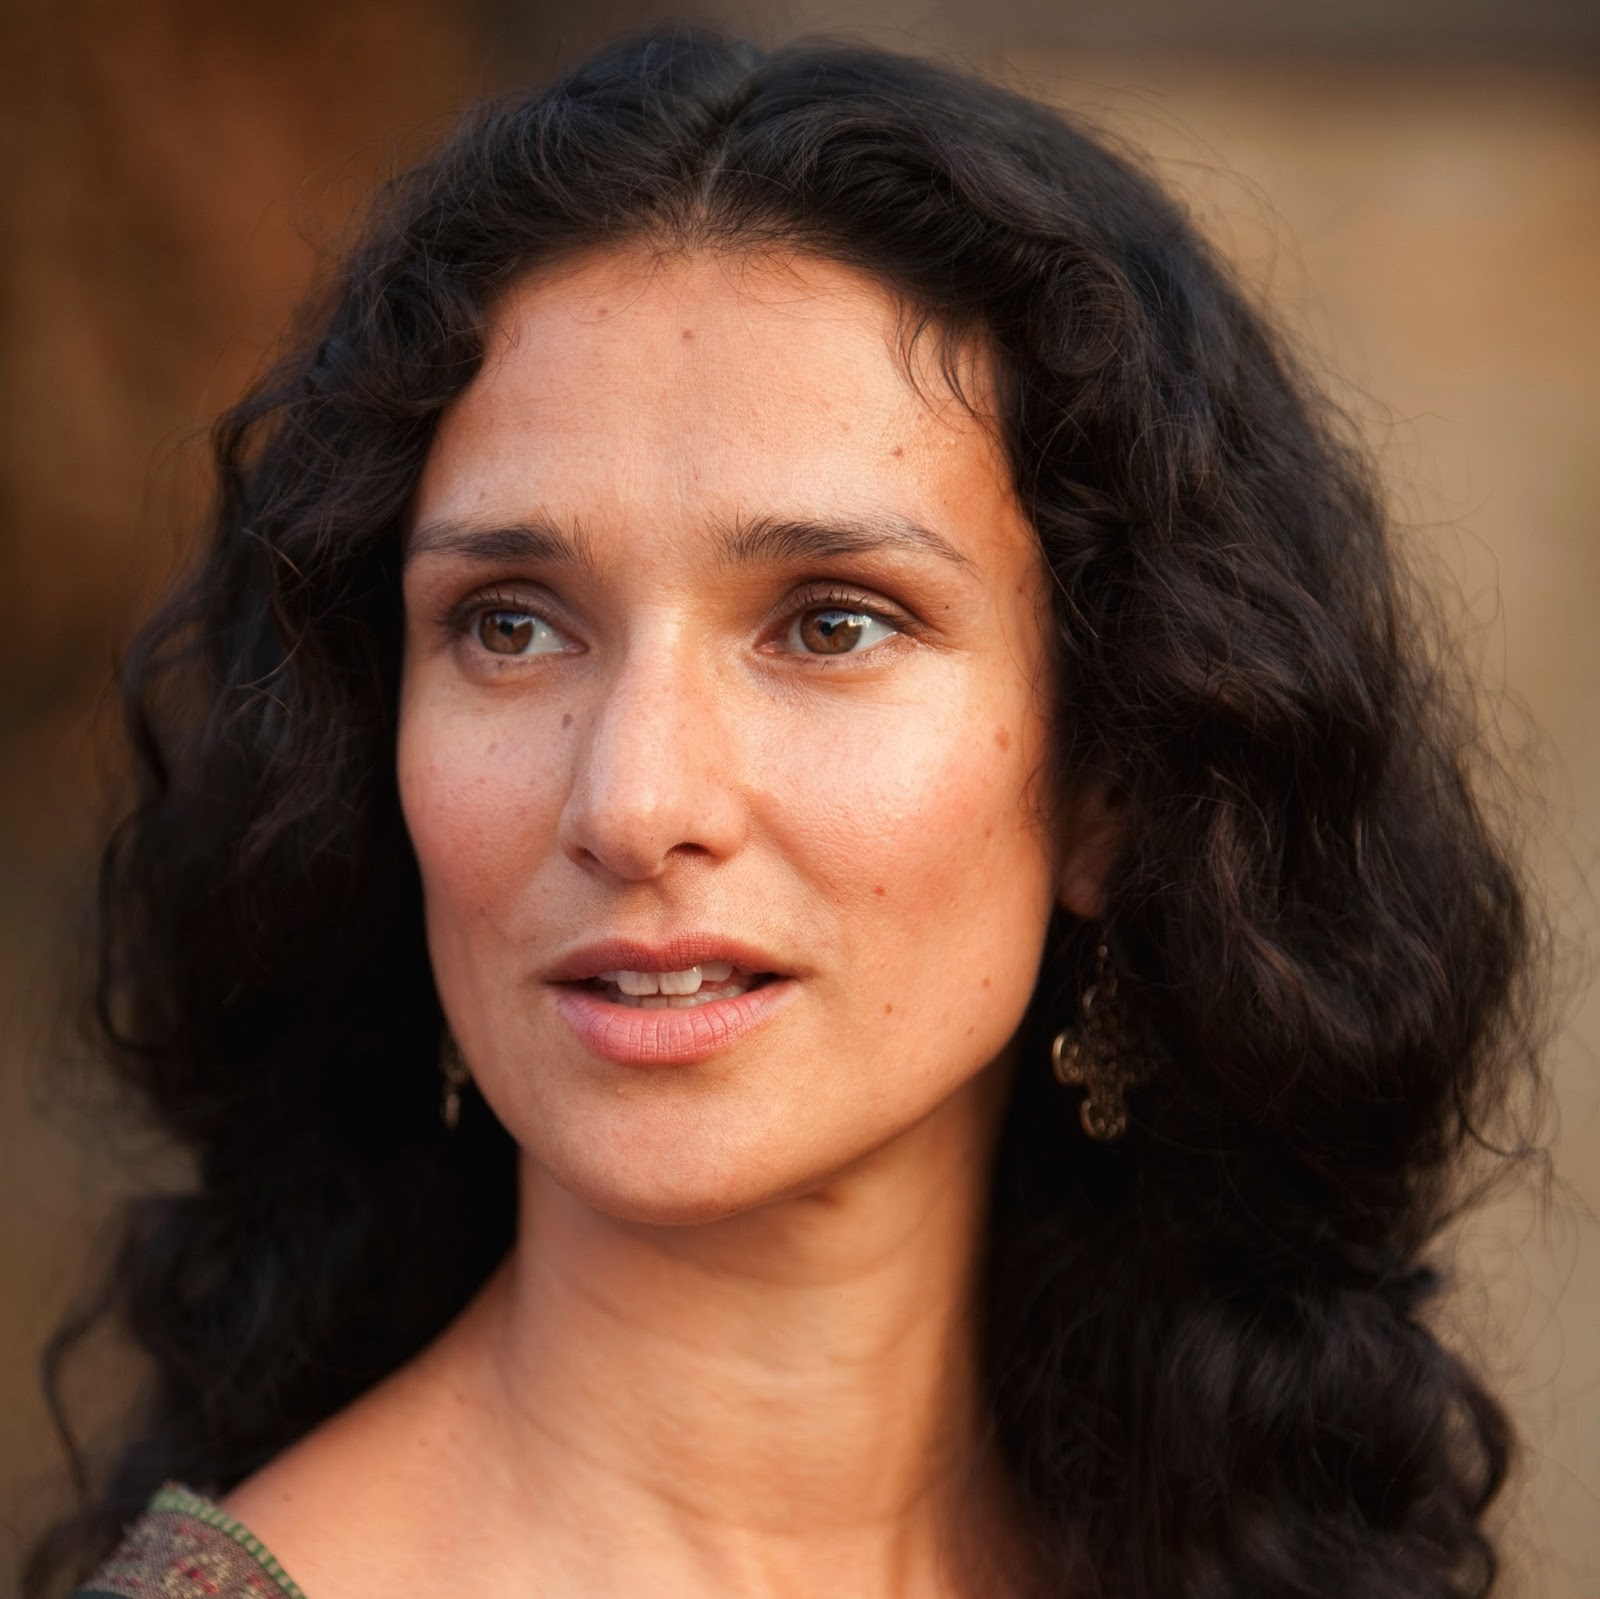 indira varma known people famous people news and